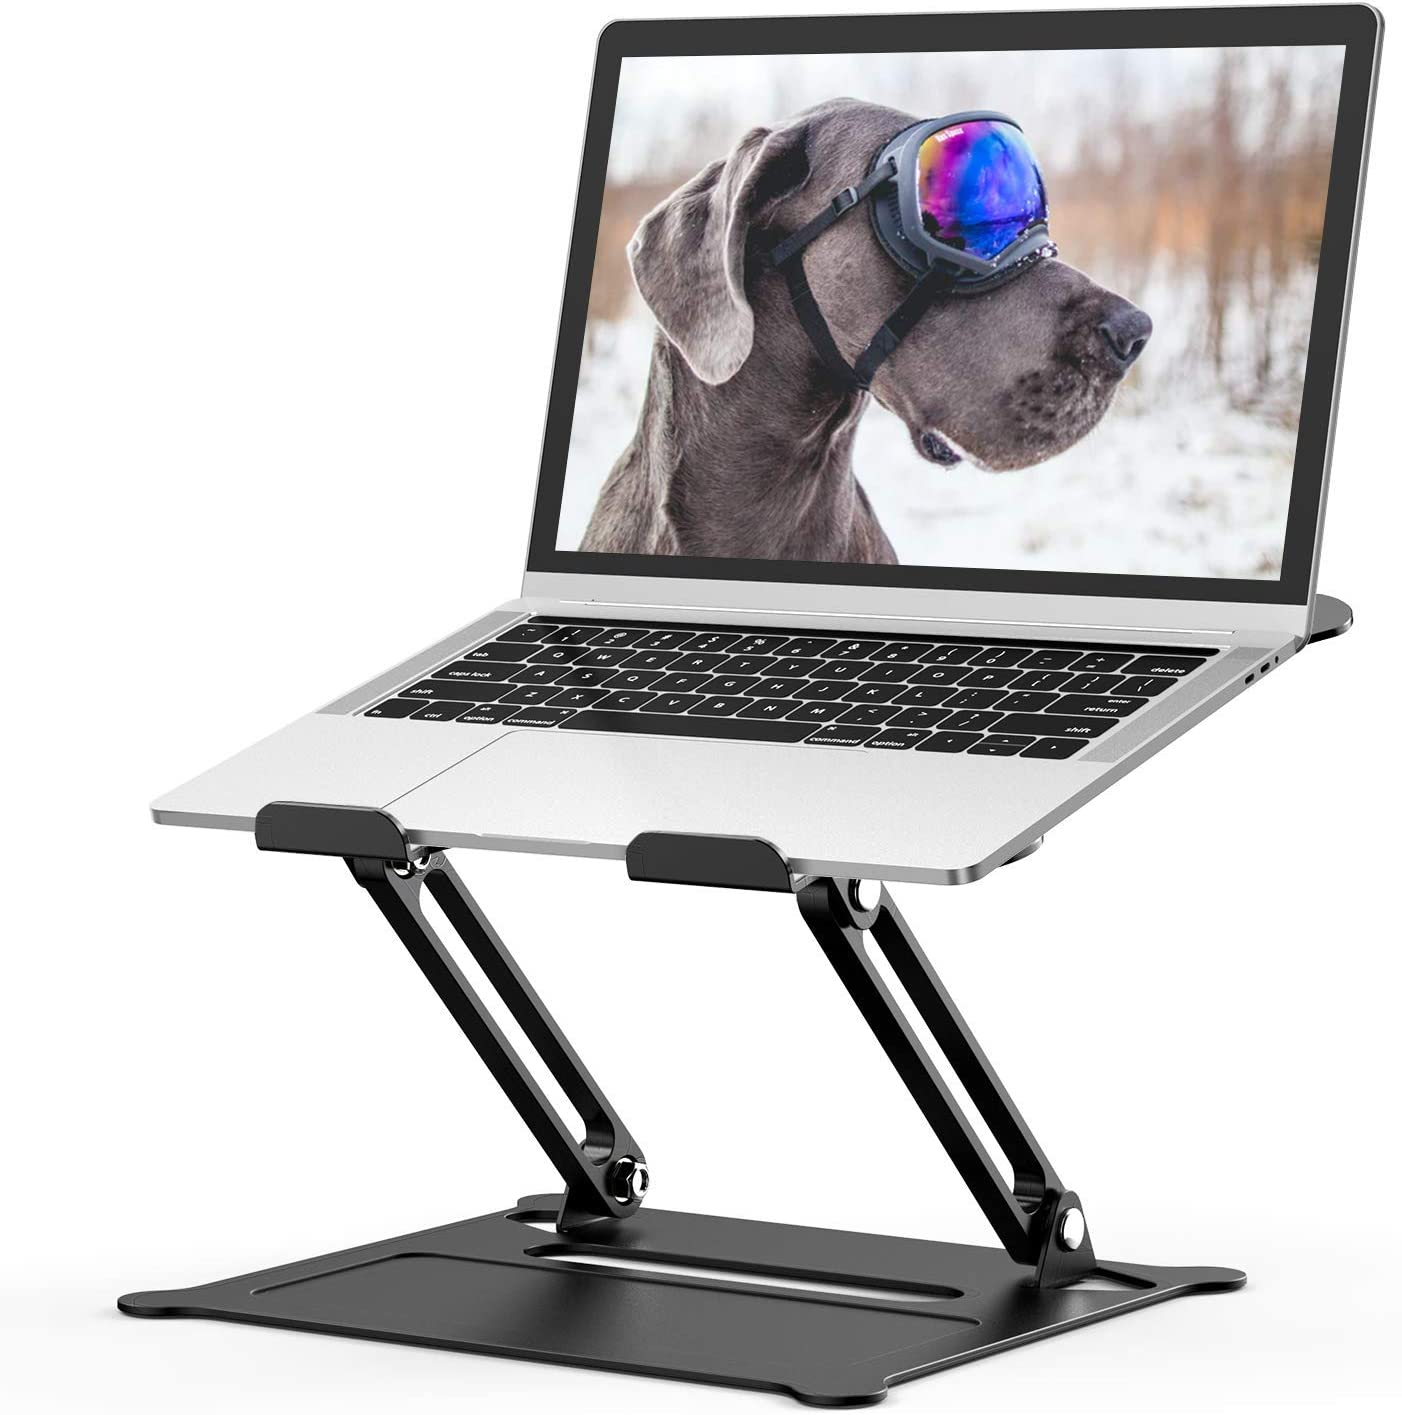 Adjustable Laptop Be super welcome Stand Aluminum Stan Riser Computer Clearance SALE Limited time Multi-Angle